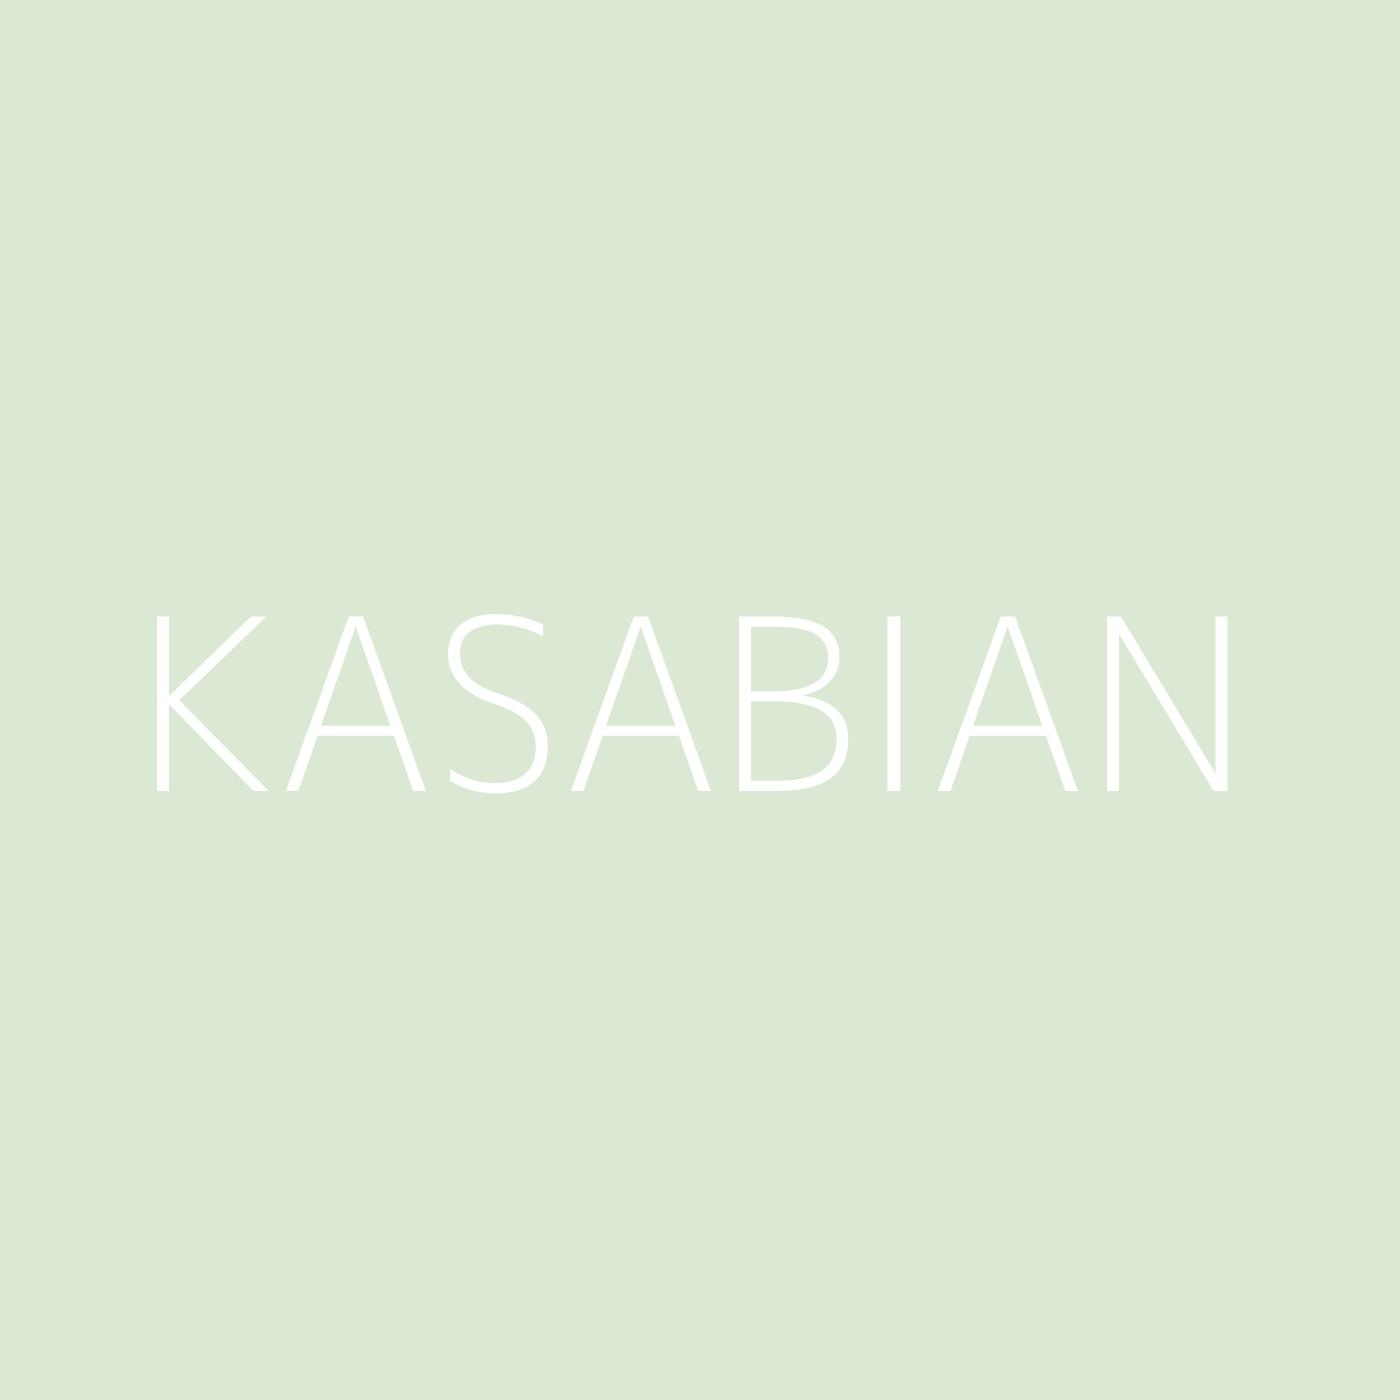 Kasabian Playlist Artwork